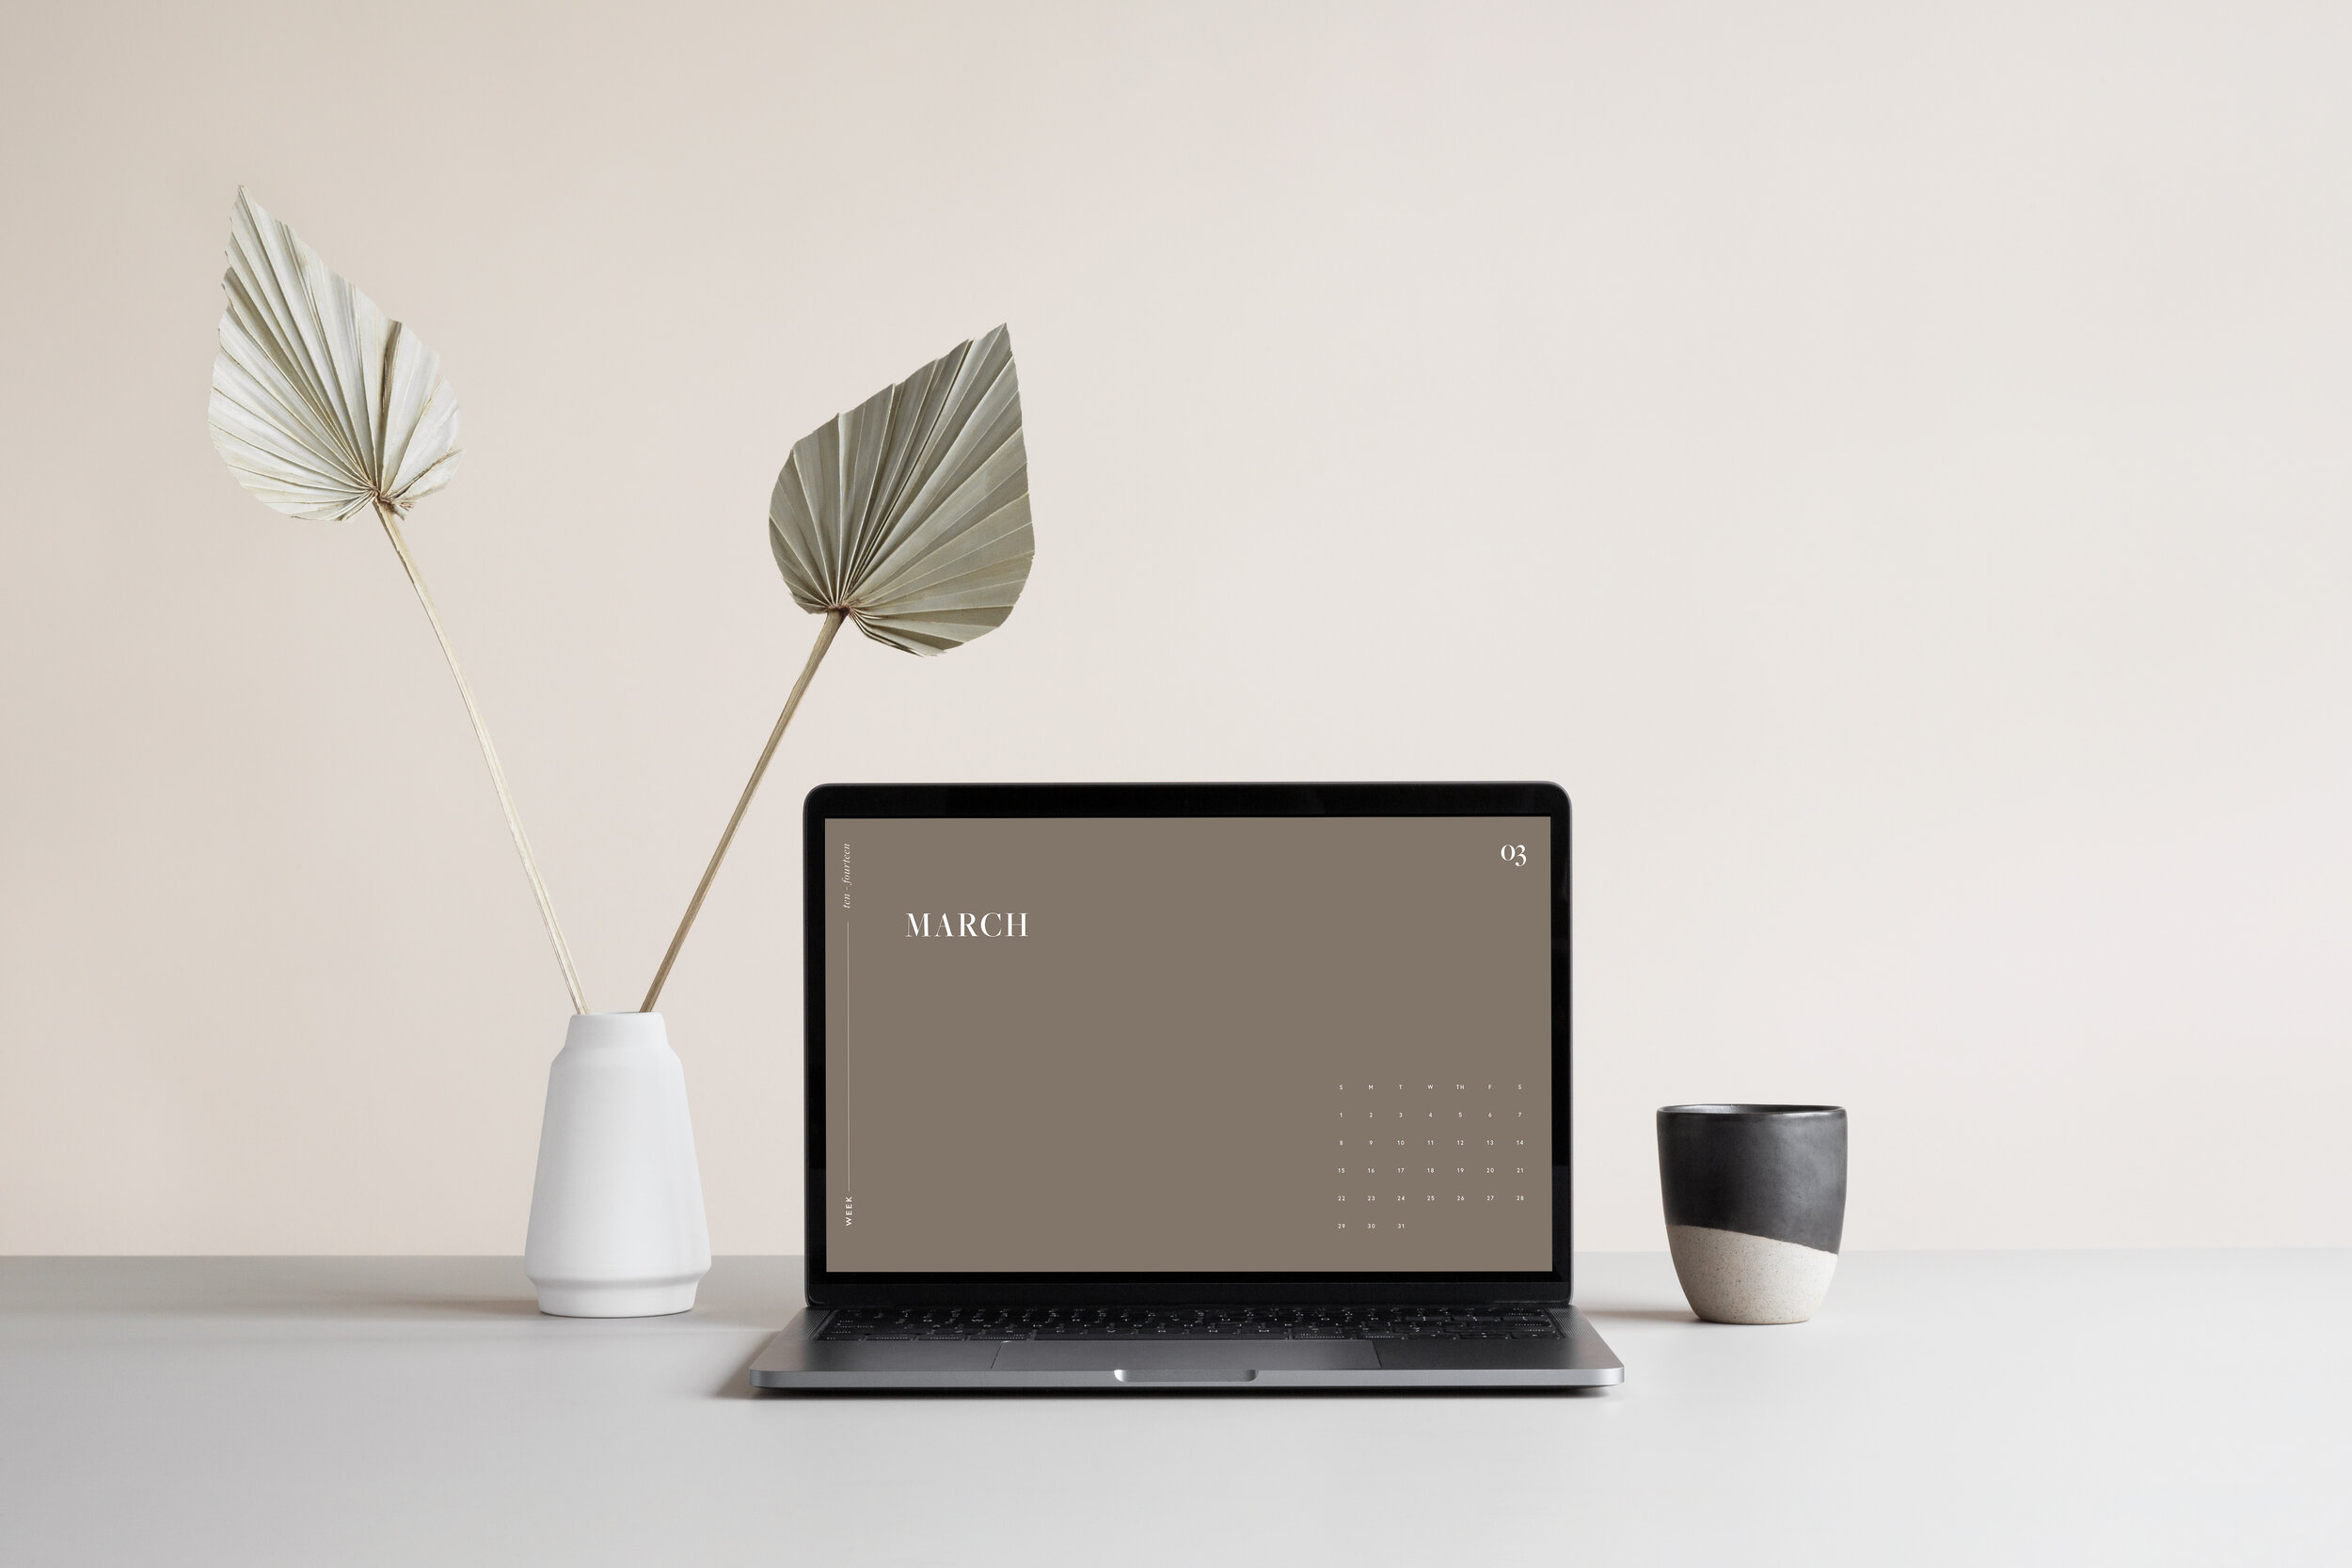 By having this application launch upon logging in to your computer, you can have a calendar on your mac computer's desktop from startup. Free Download - Minimal 2020 Wallpaper Calendar For ...